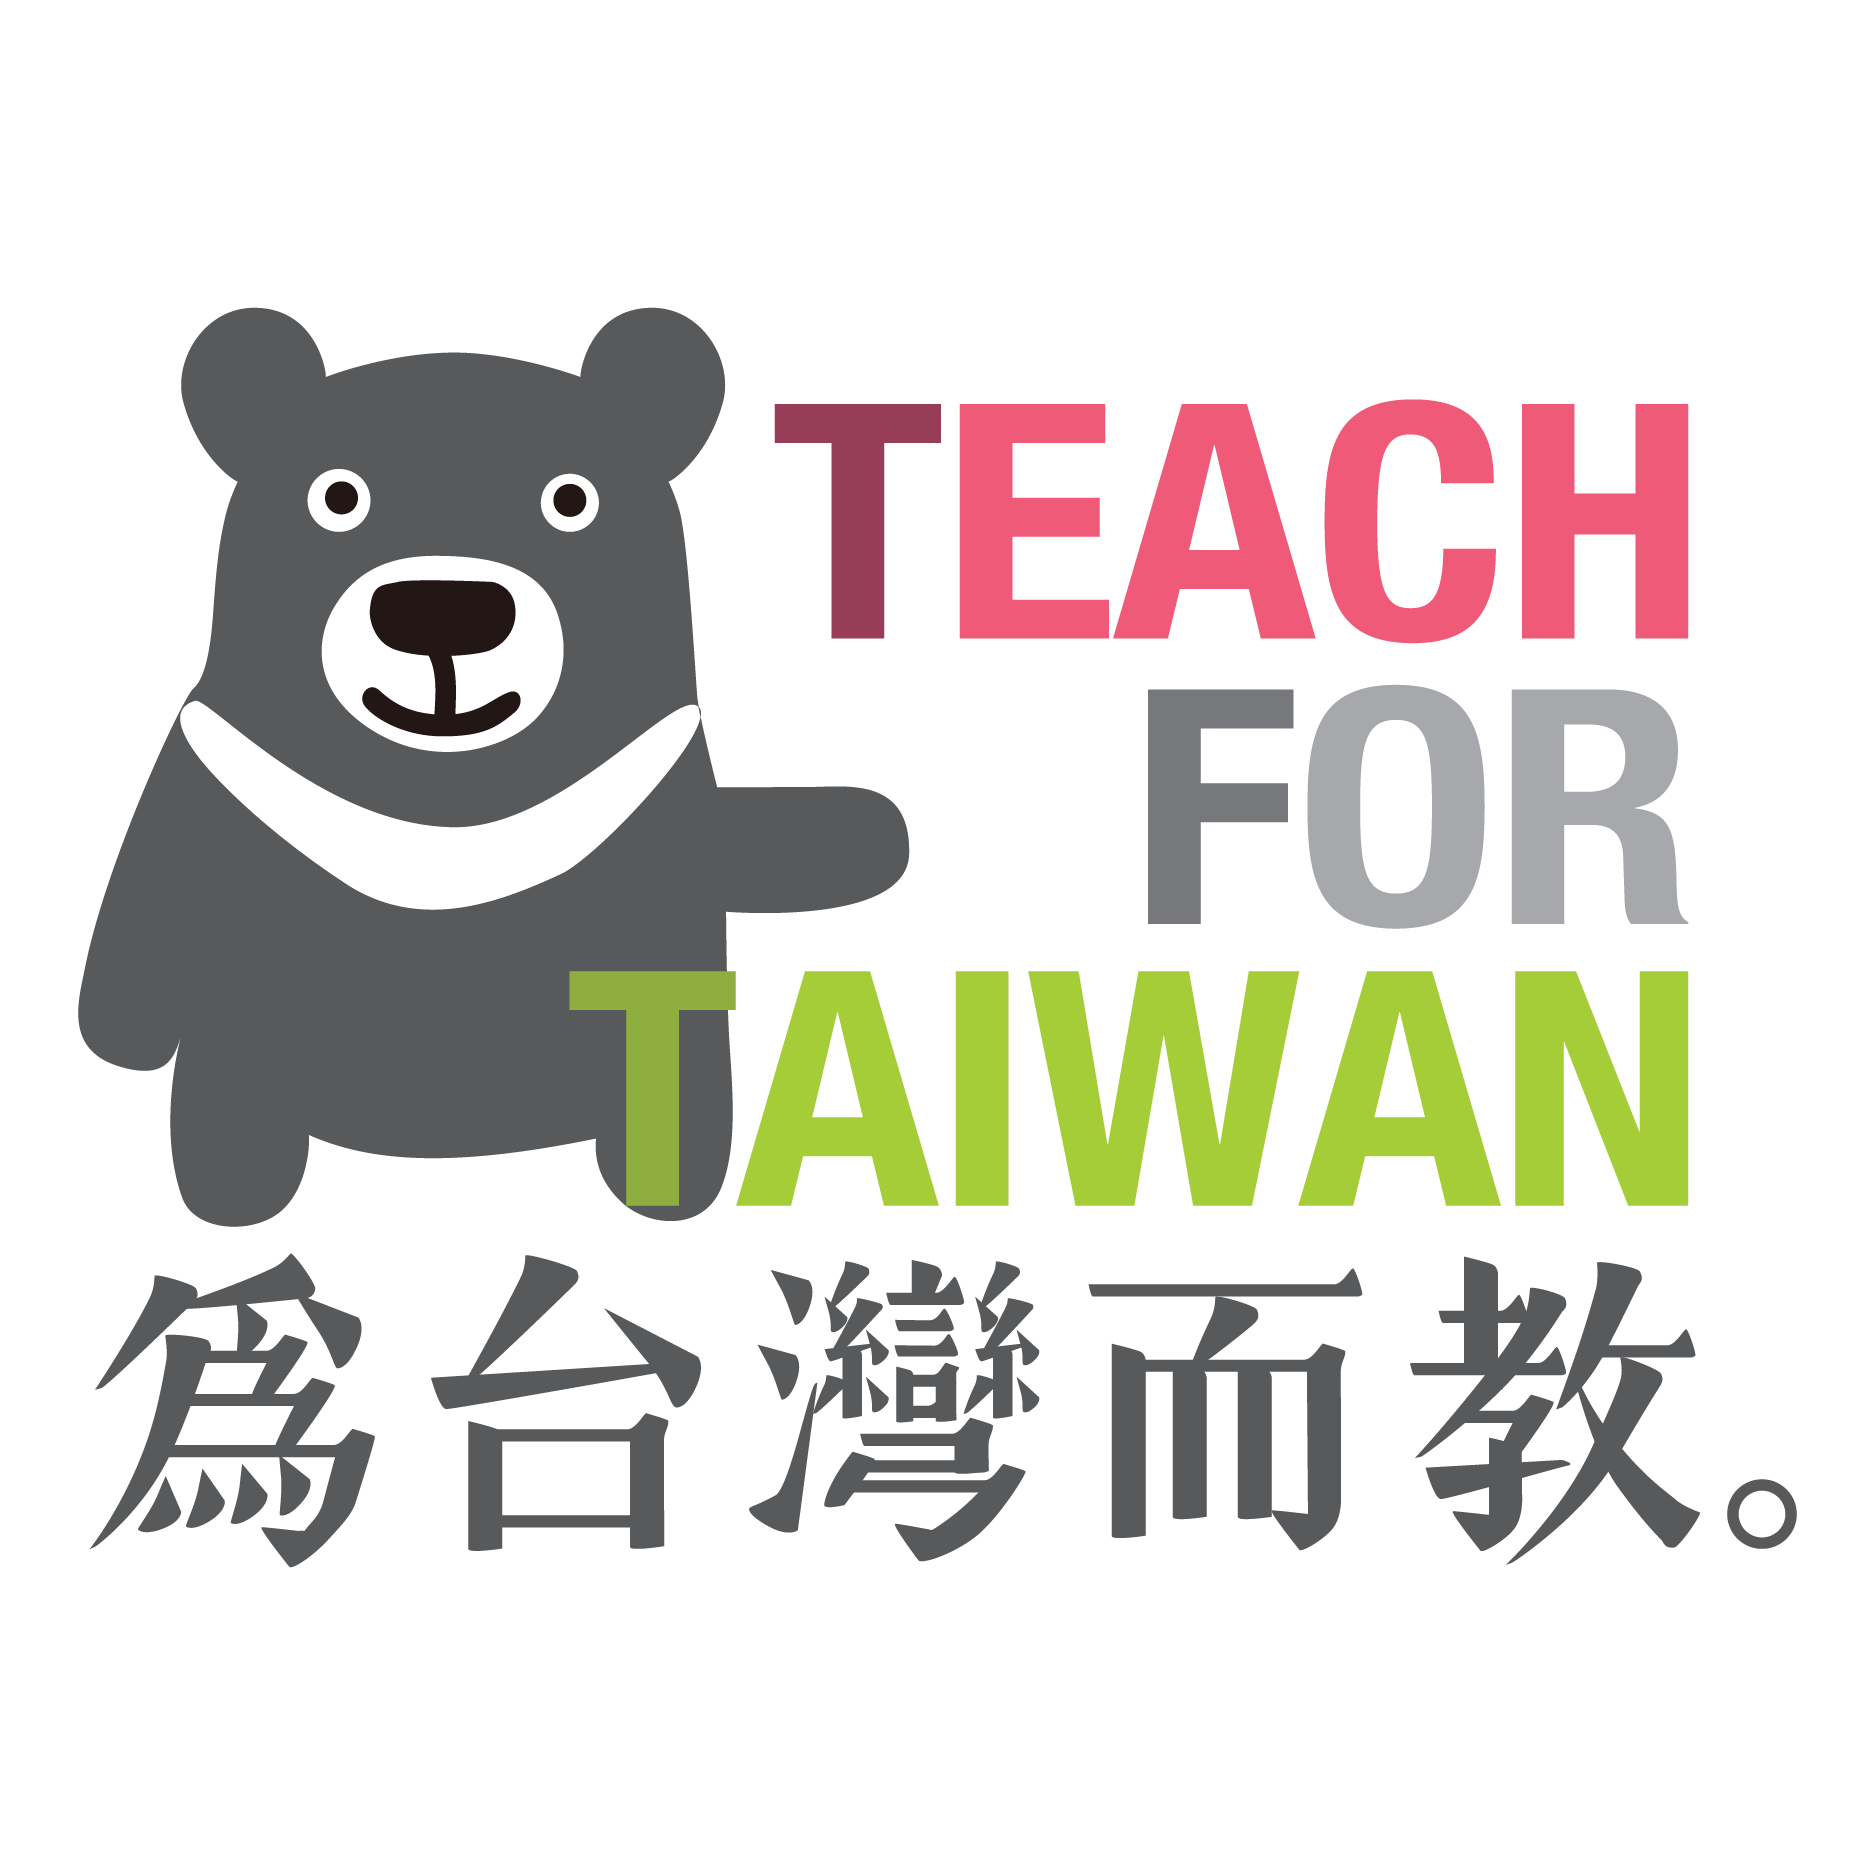 Teach for Tawian's quote